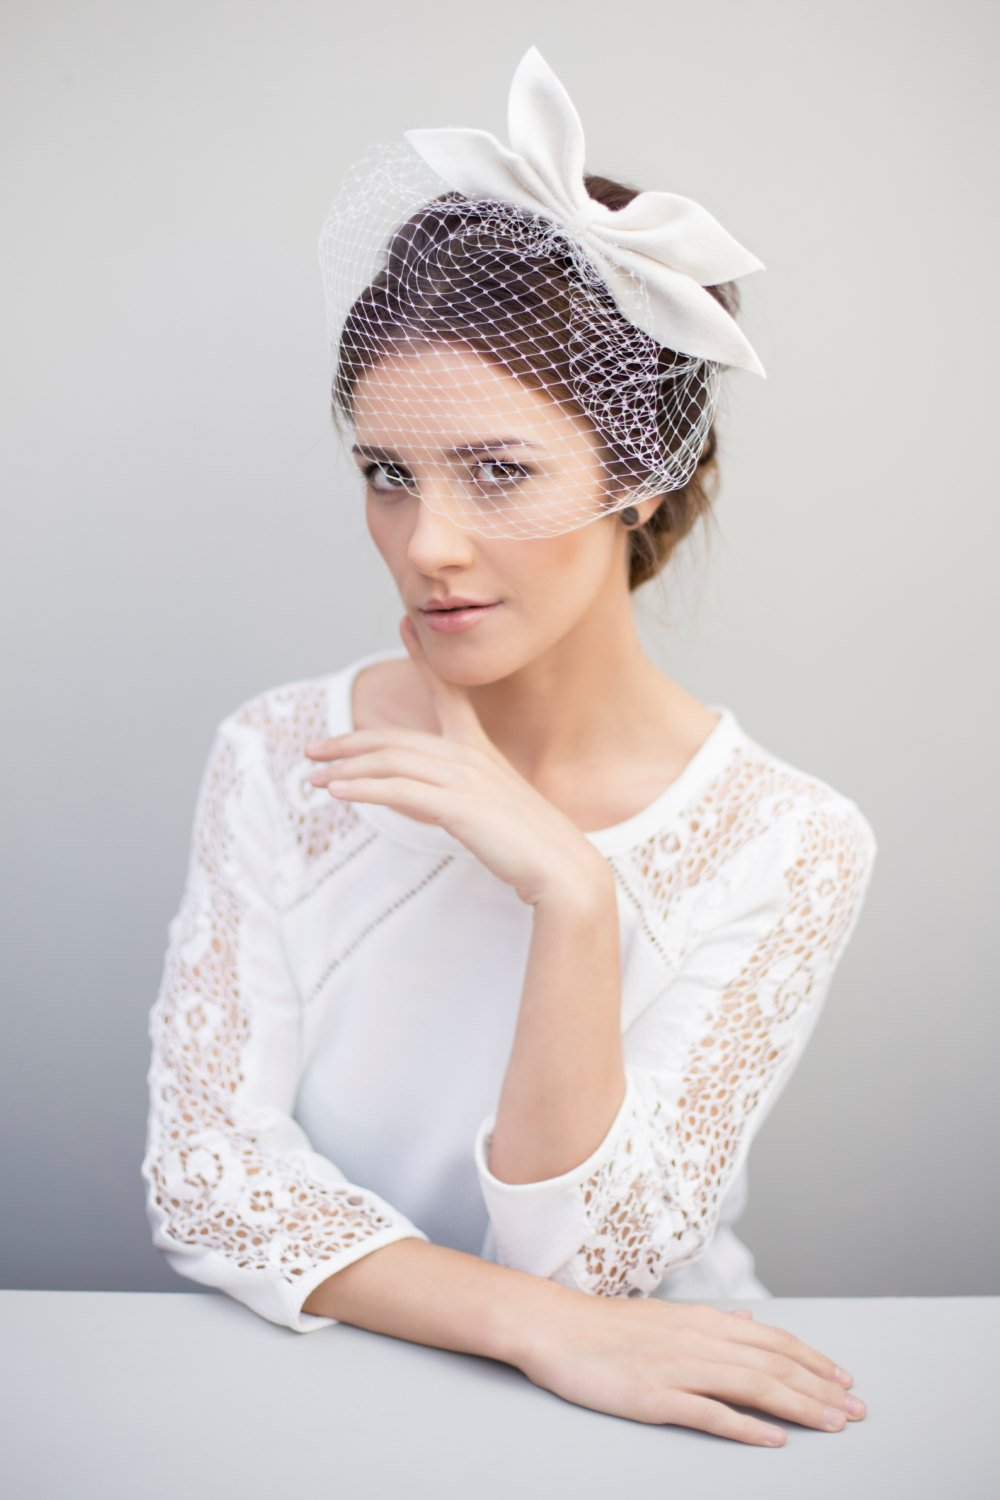 Birdcage Veil, Bridal Fascinator, Wedding Bow Headpiece, Veils for Brides.jpg